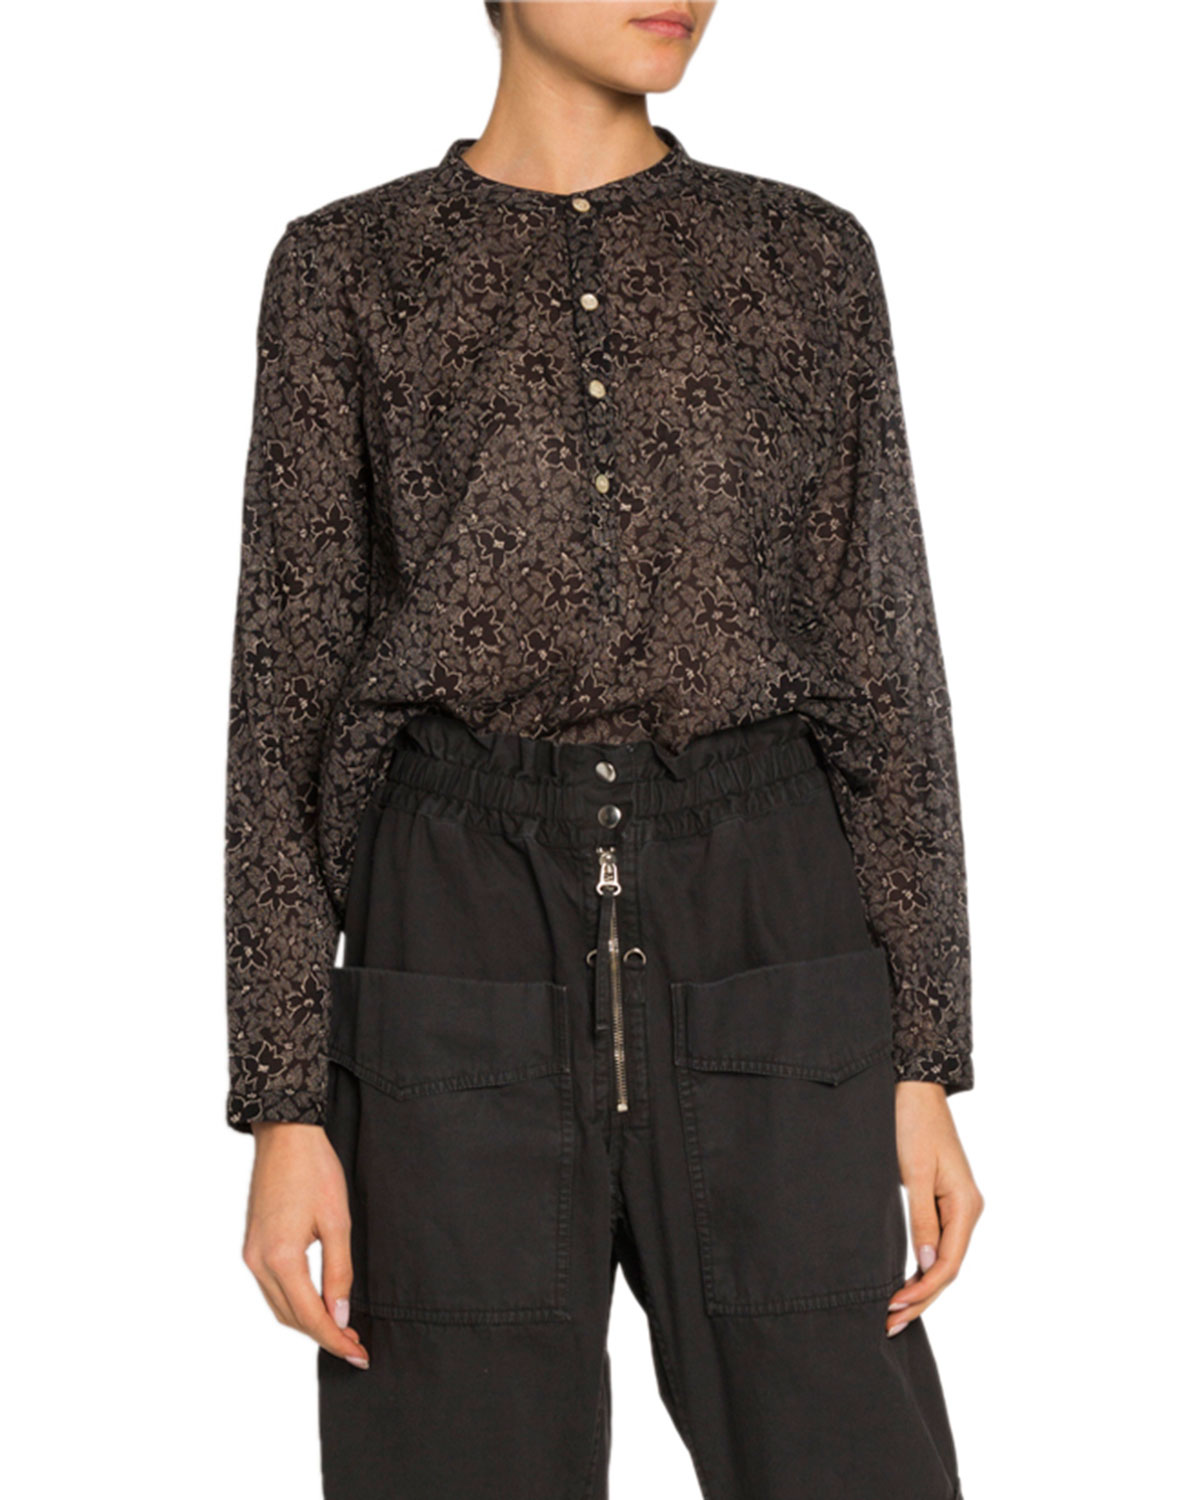 Etoile Isabel Marant Tops MEXIKA FLORAL BAND-COLLAR BUTTON-DOWN TOP